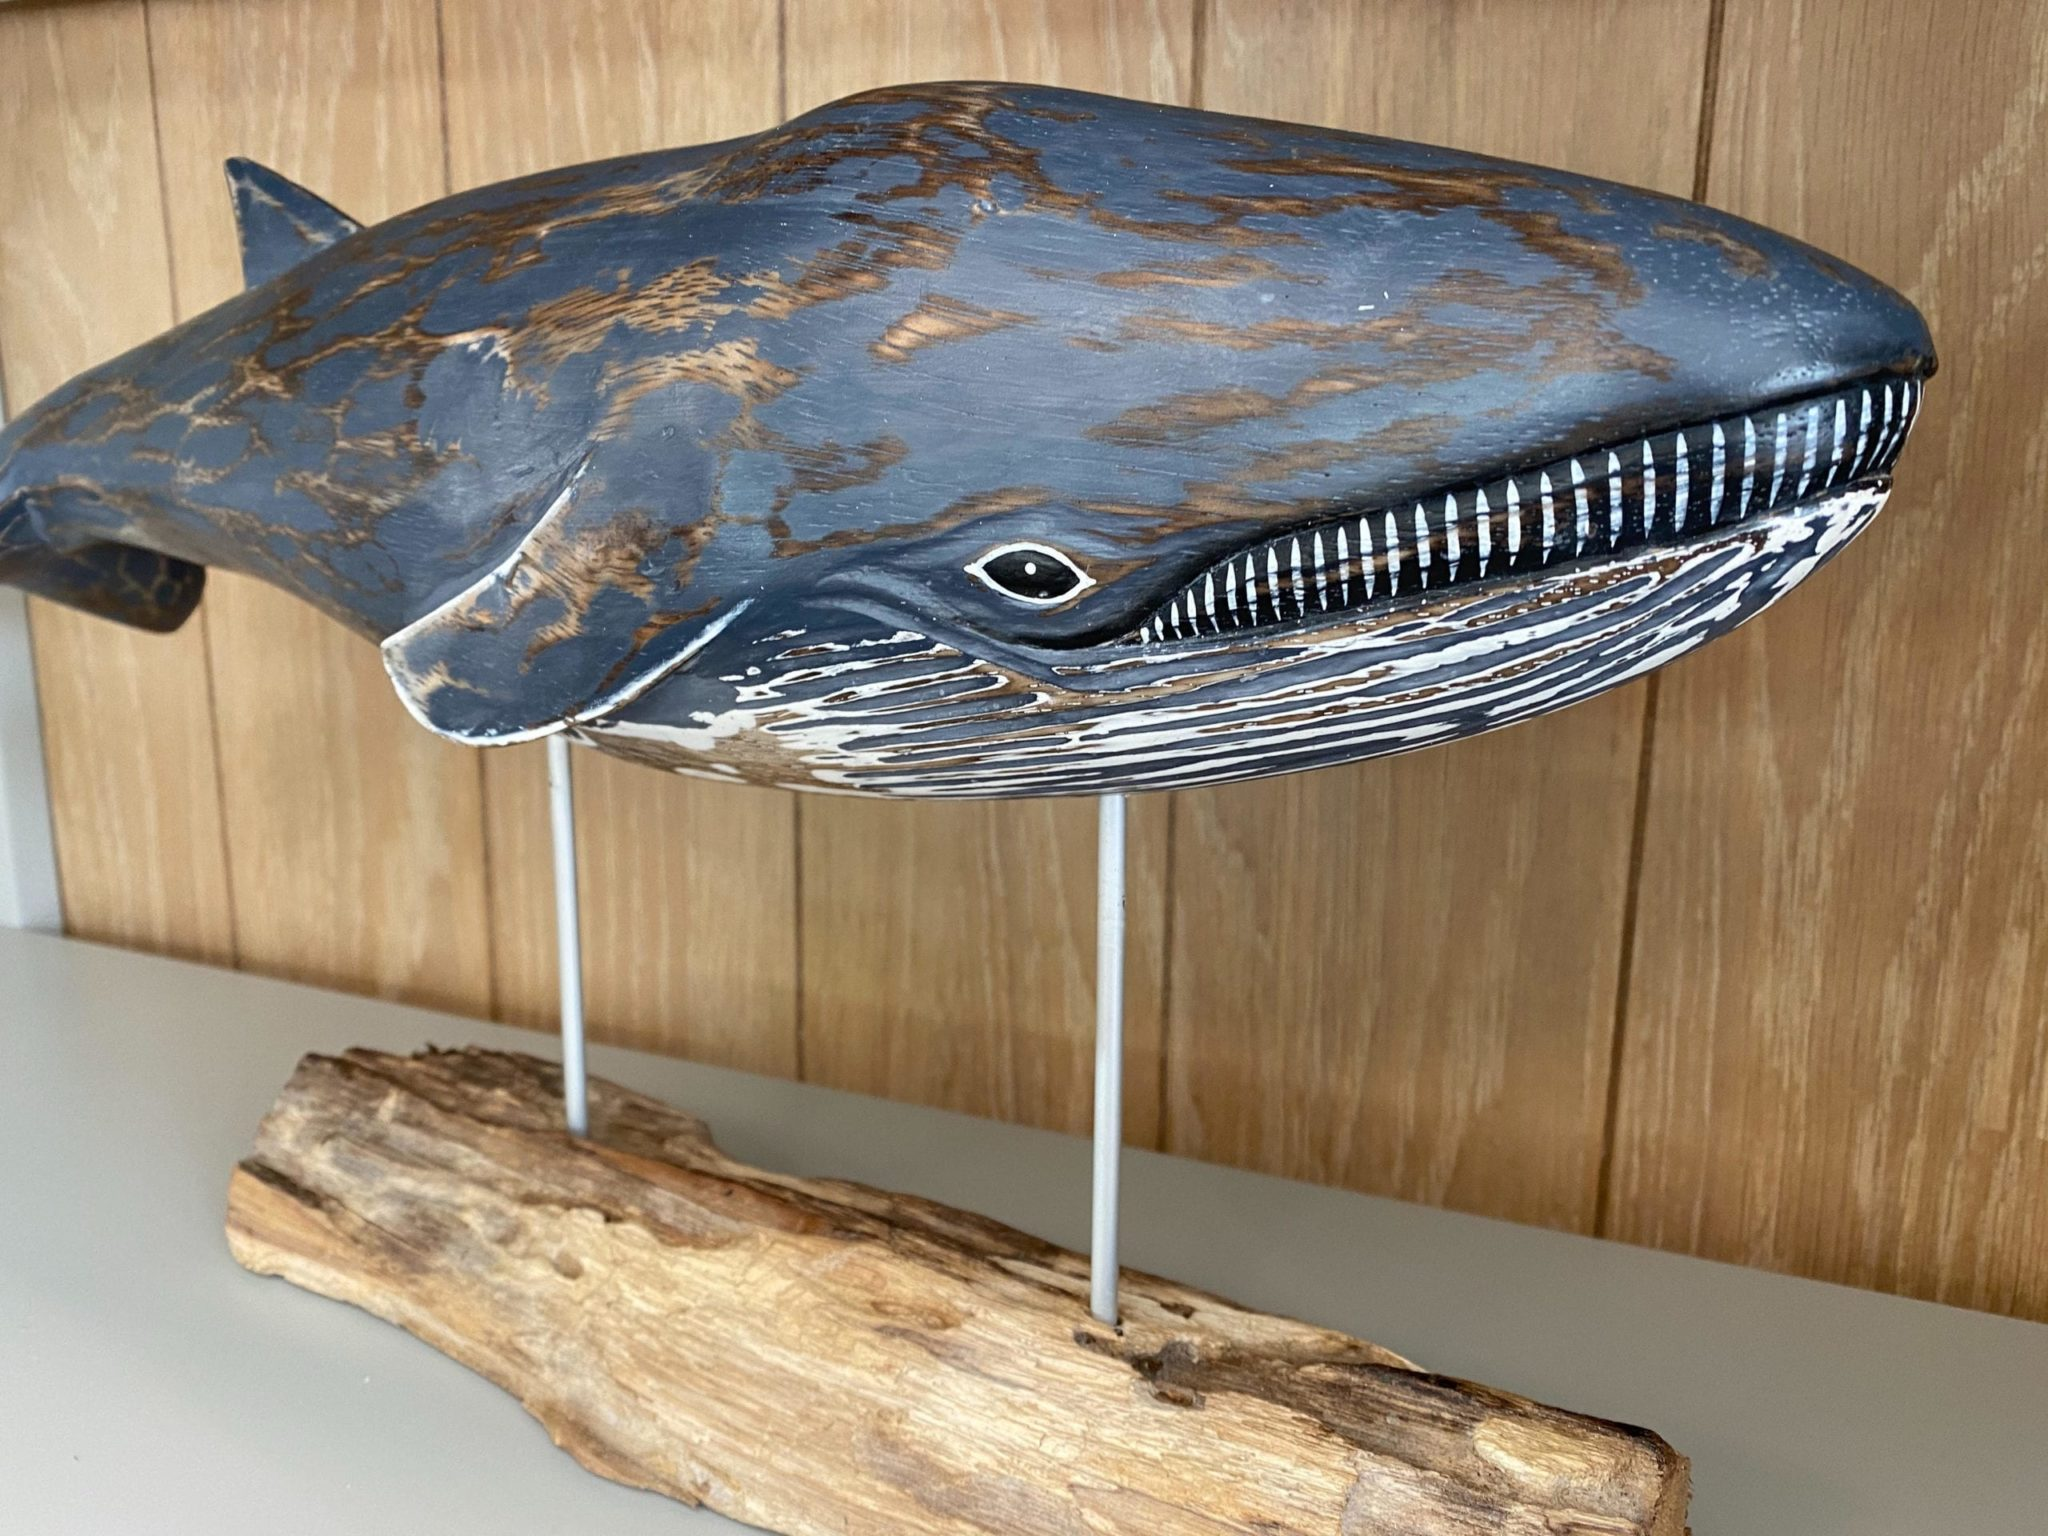 D406 Archipelago large blue whale wood carving close up